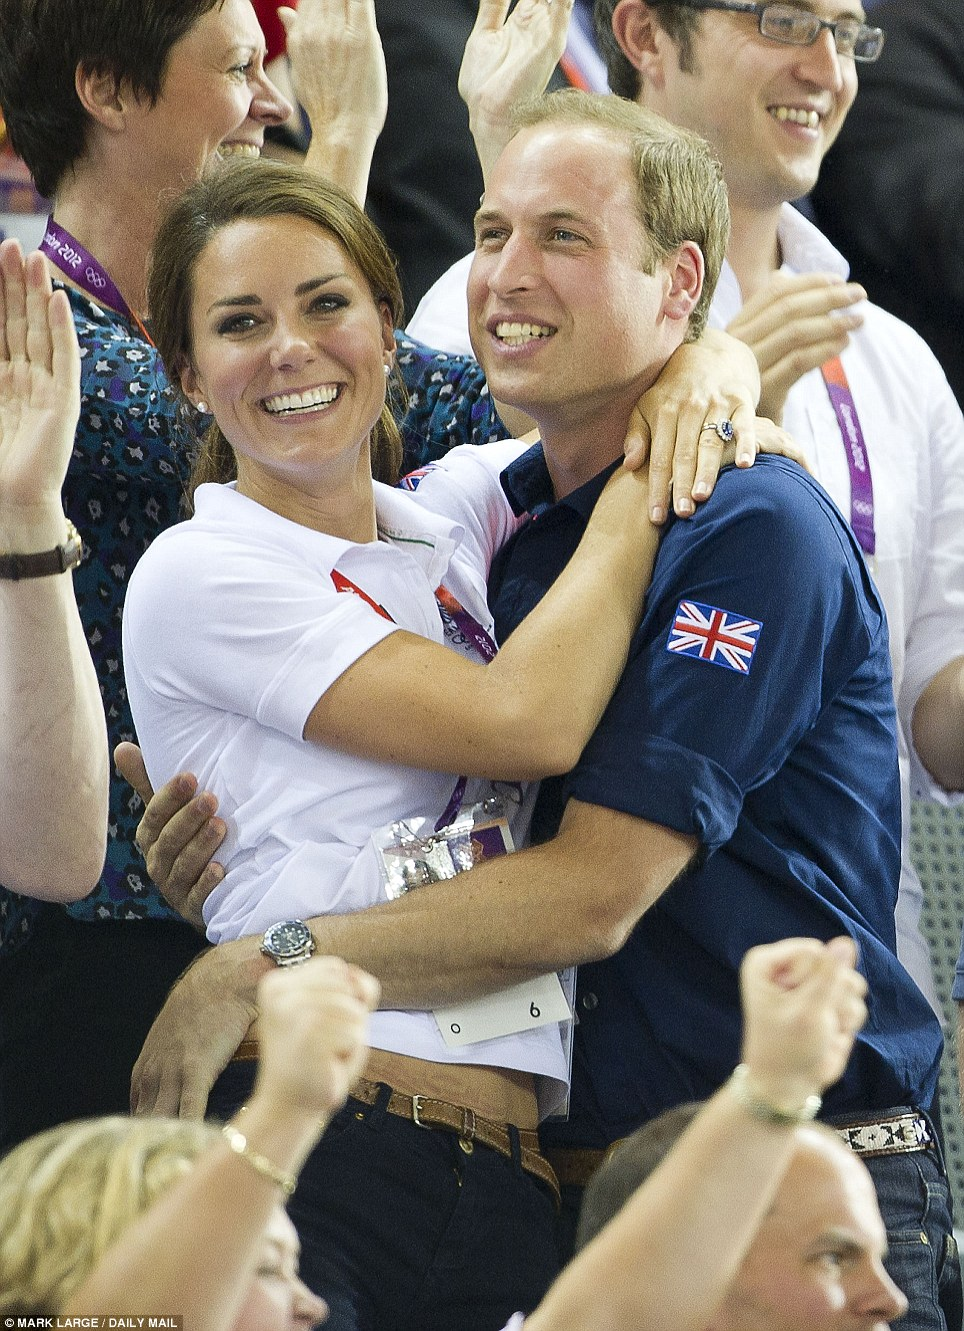 Your Royal hugness! The Royal duo shared a rare public embrace as they cheered Sir Chris Hoy to victory at the Olympic Games in August 2012